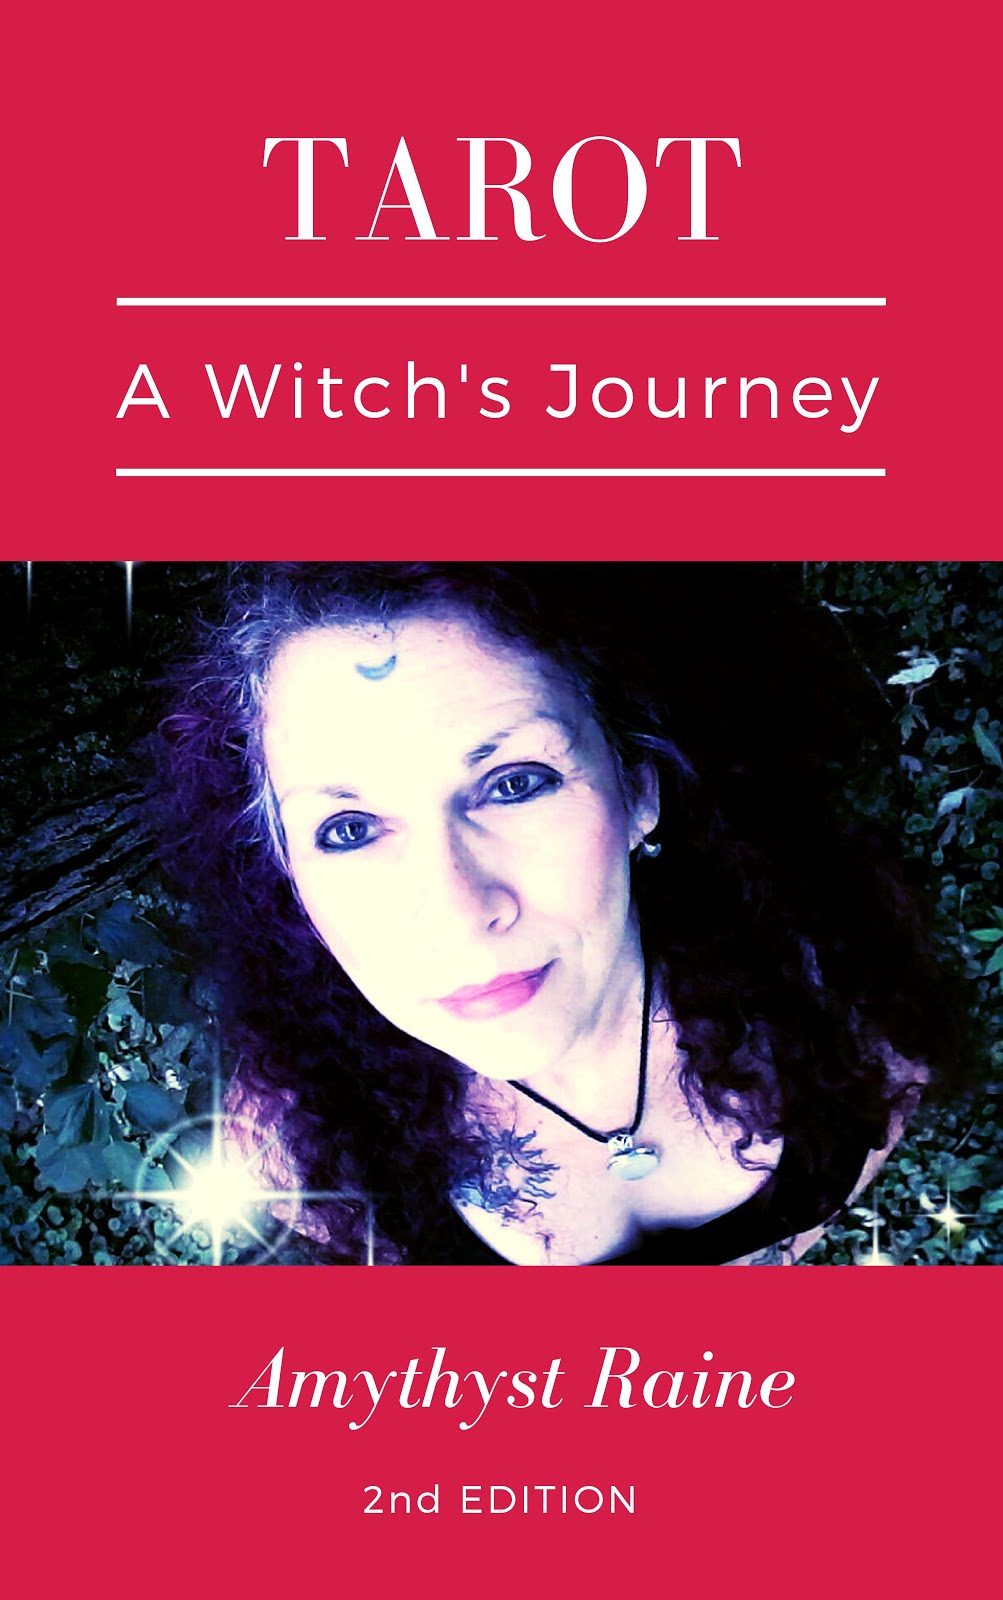 Tarot: A Witch's Journey